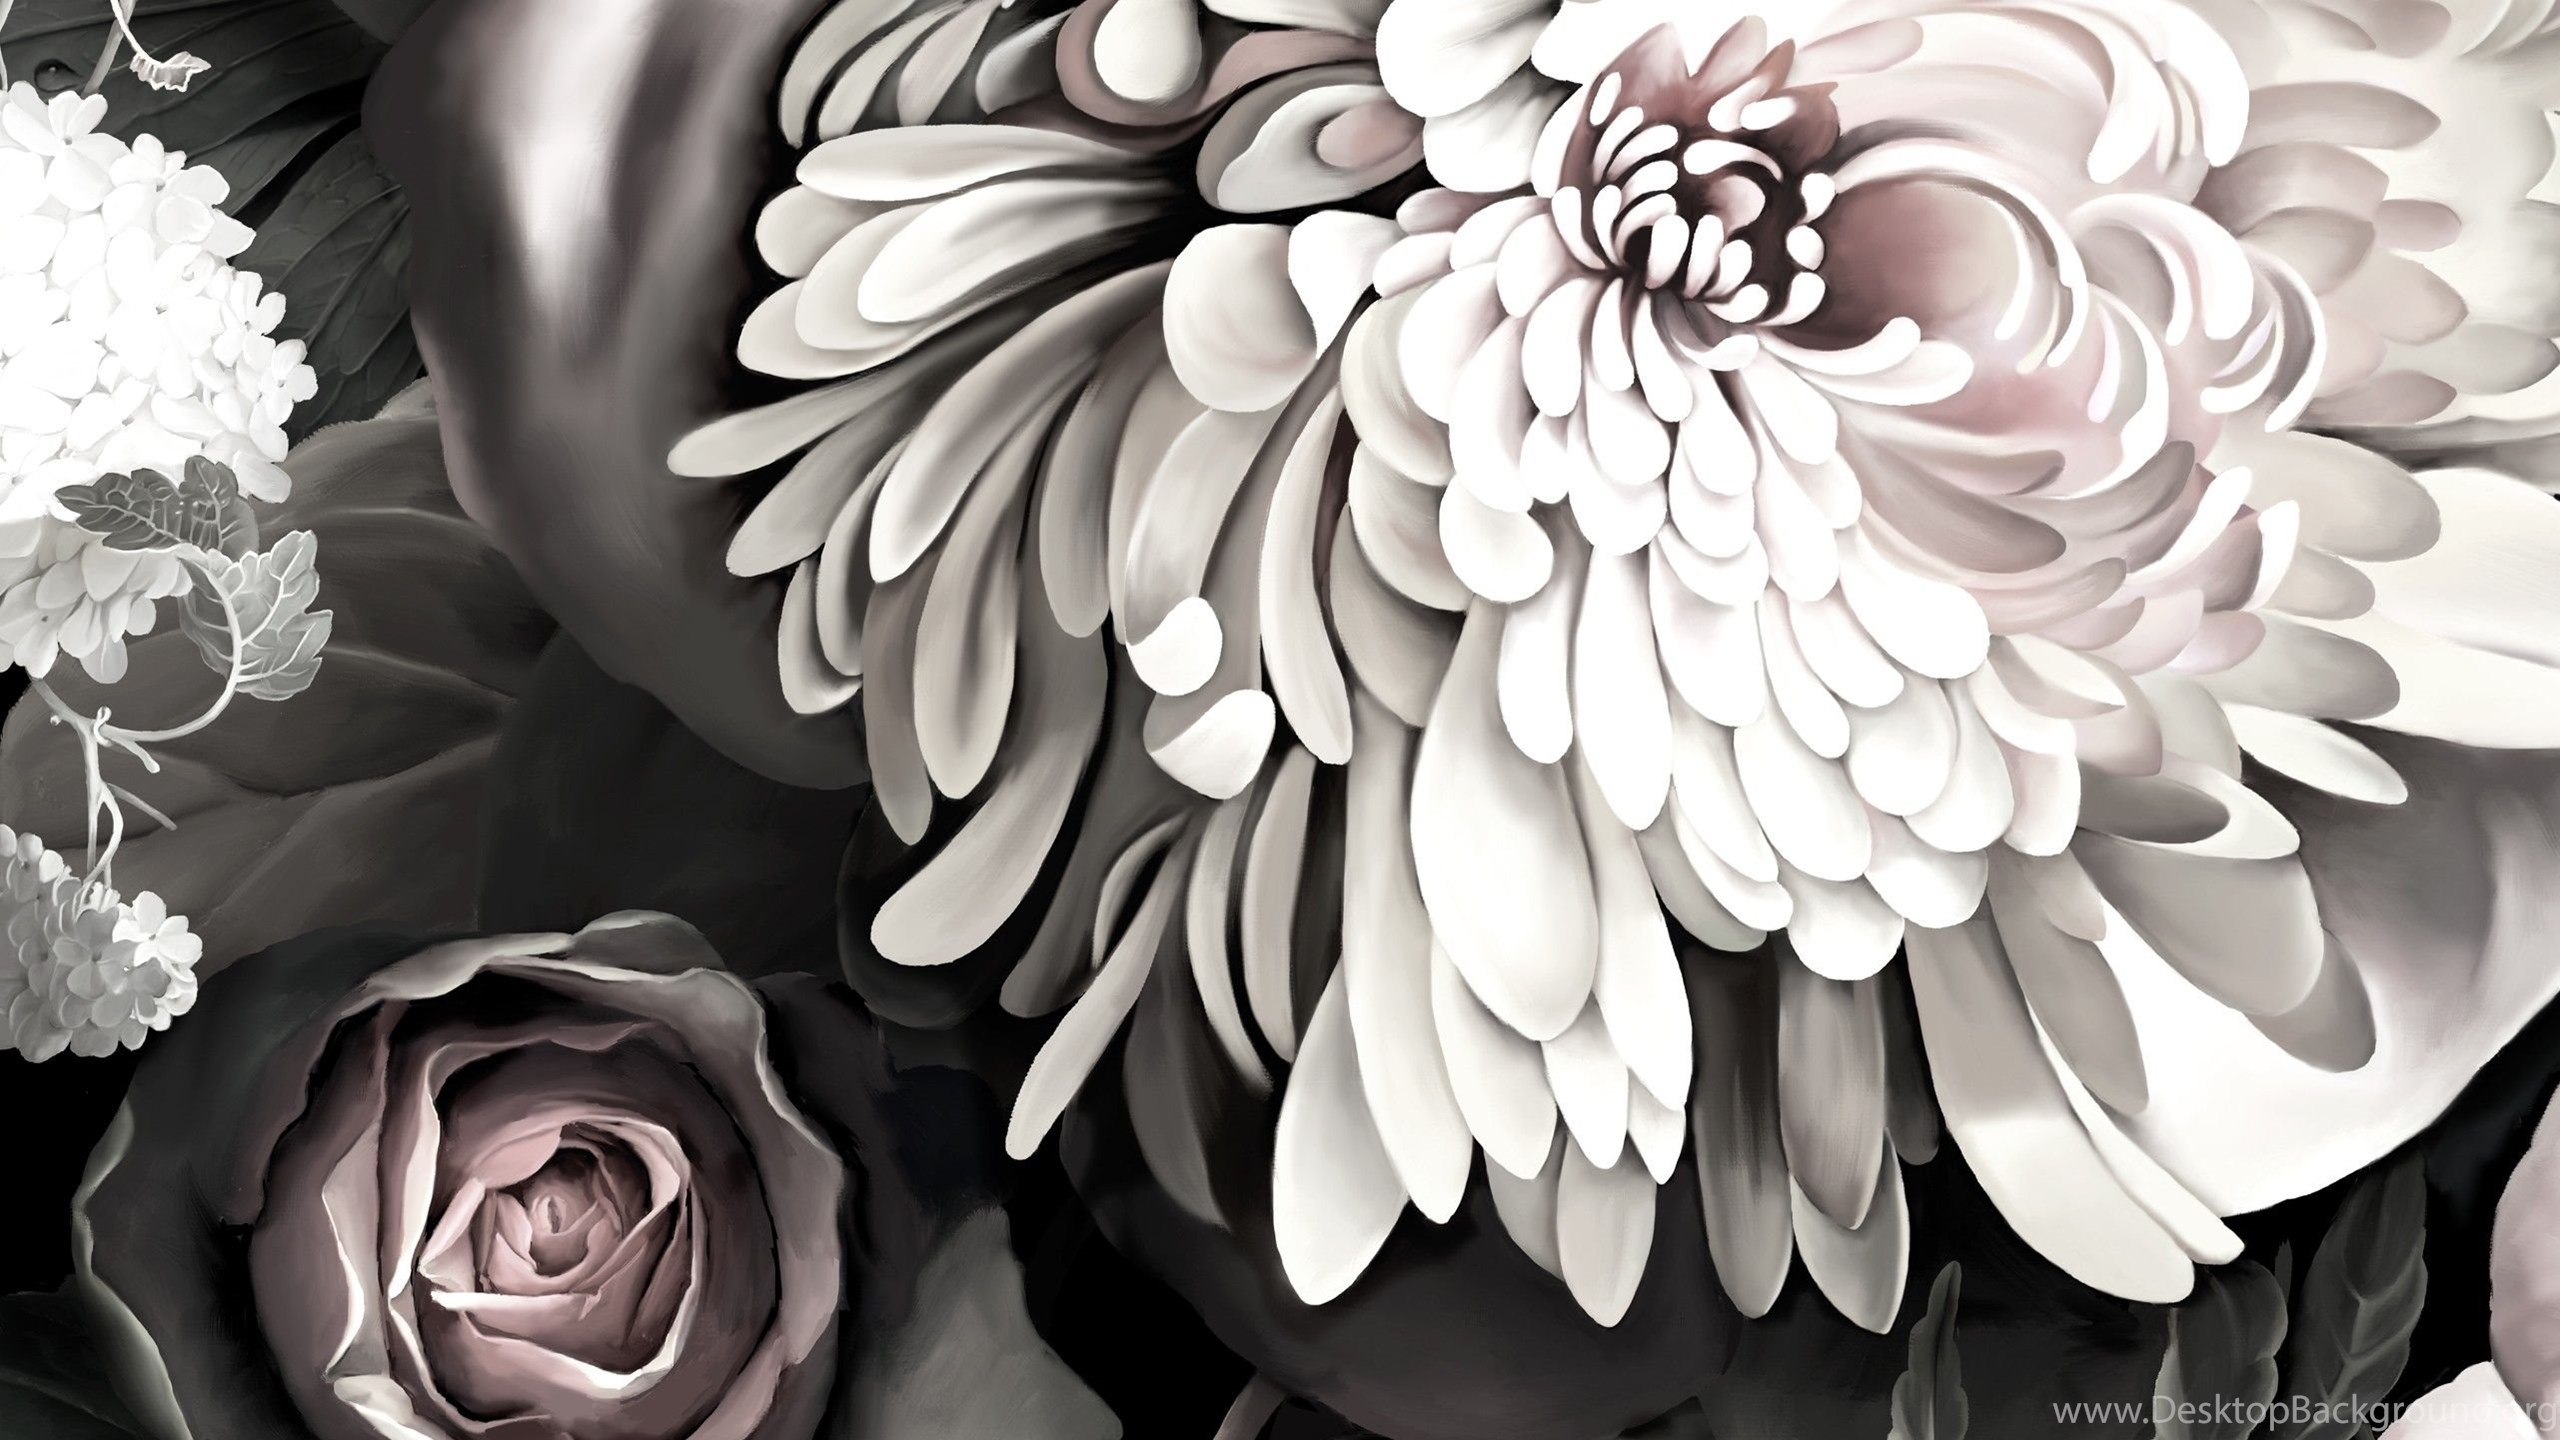 Dark Floral Ii Black Desaturated By Ellie Cashman Design Desktop